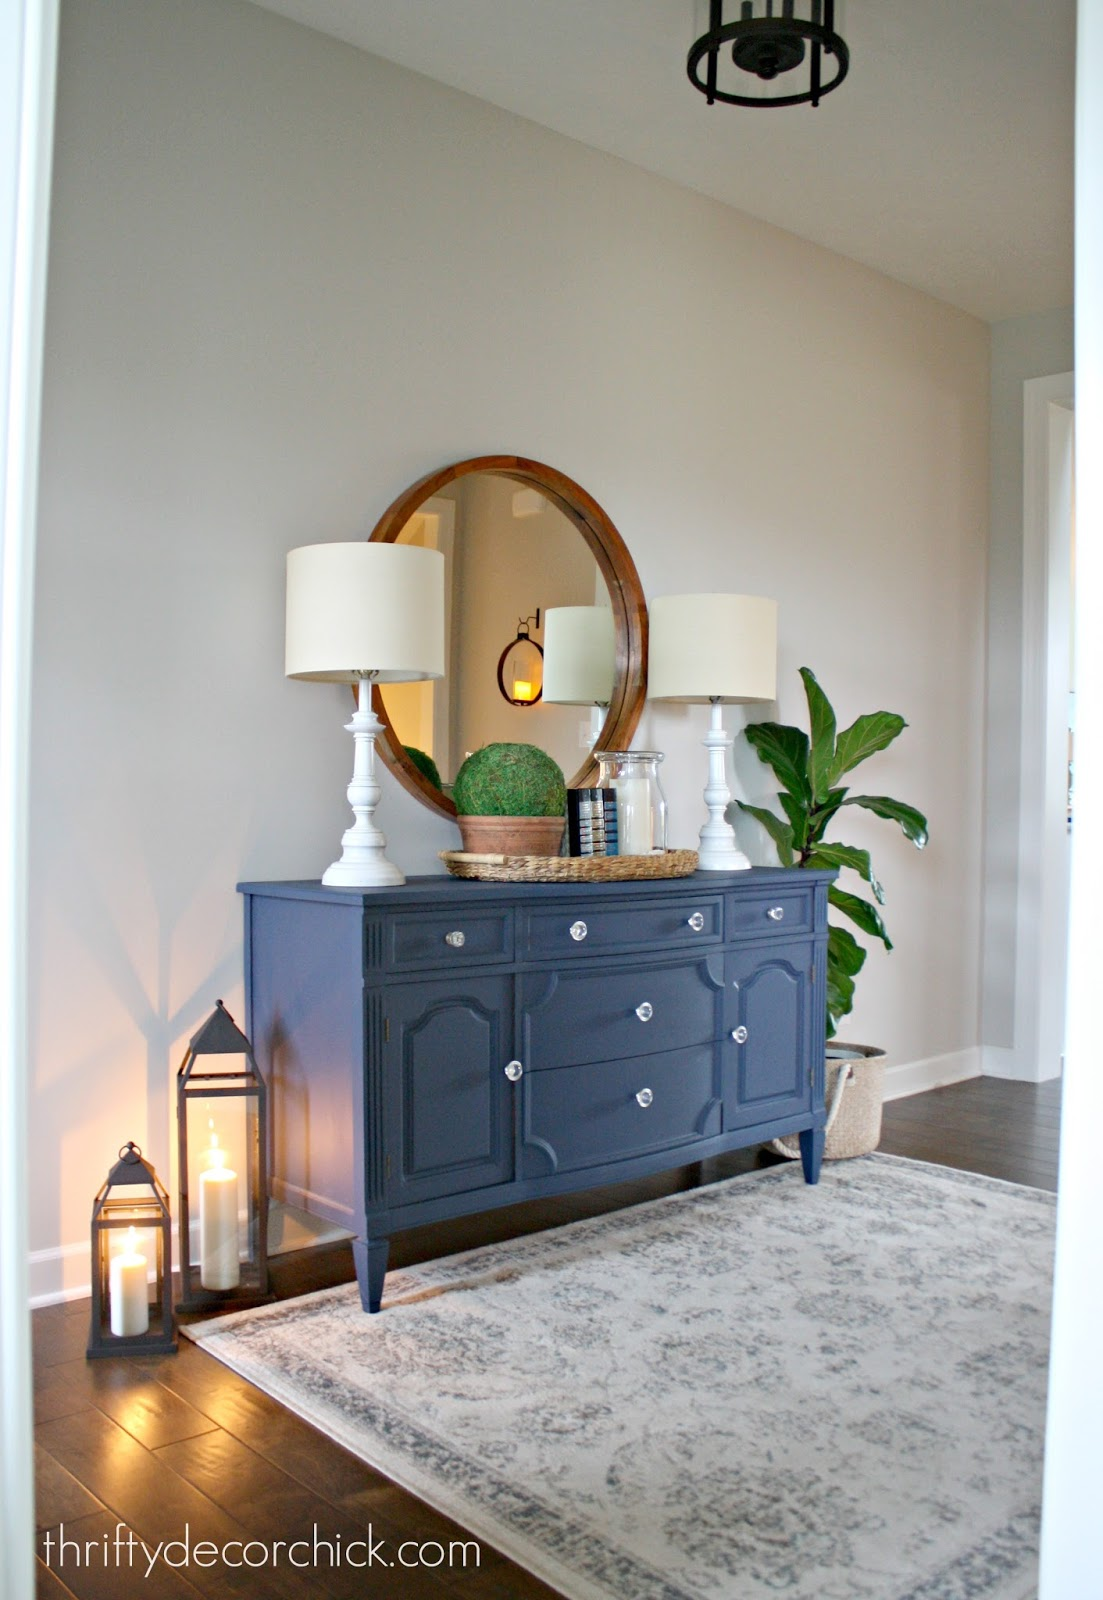 Our Cozy And Welcoming Foyer From Thrifty Decor Chick